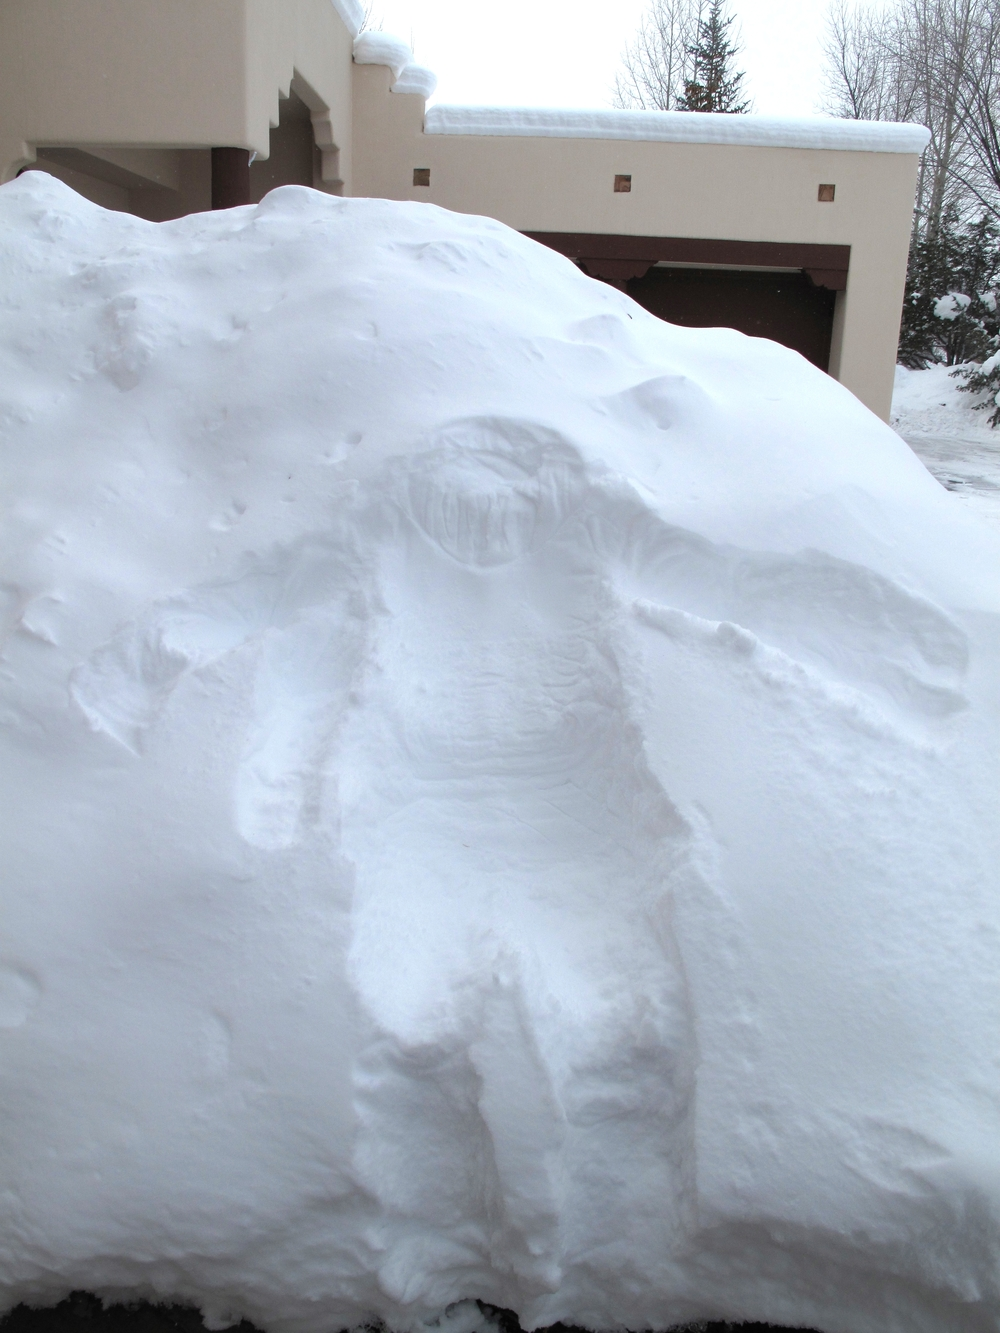 Body shape in a snow bank. Snow angels.